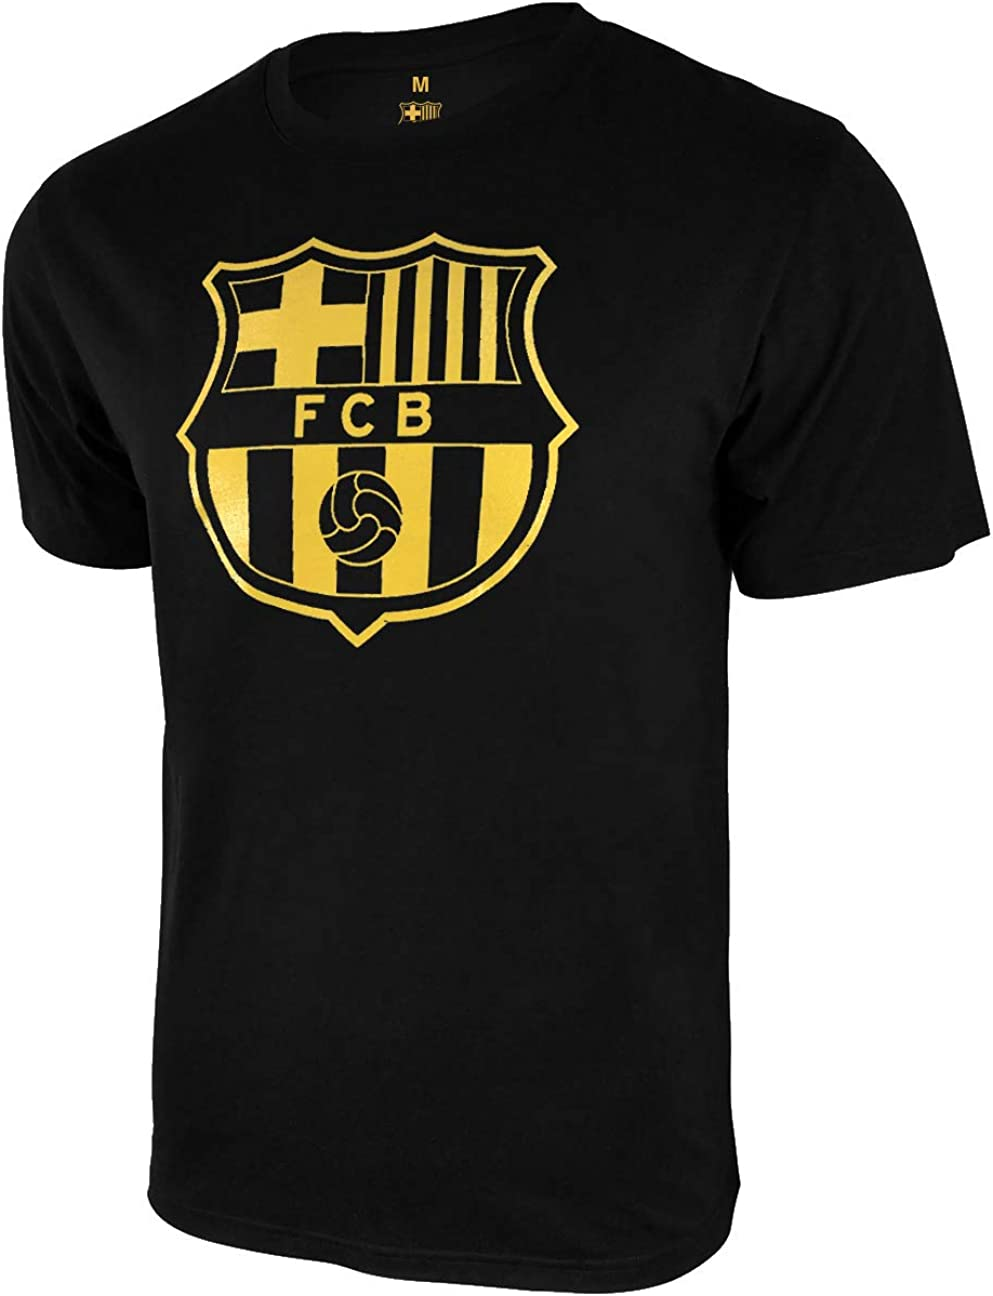 02 Icon Sports Men FC Barcelona Officially Licensed Soccer T-Shirt Cotton Tee